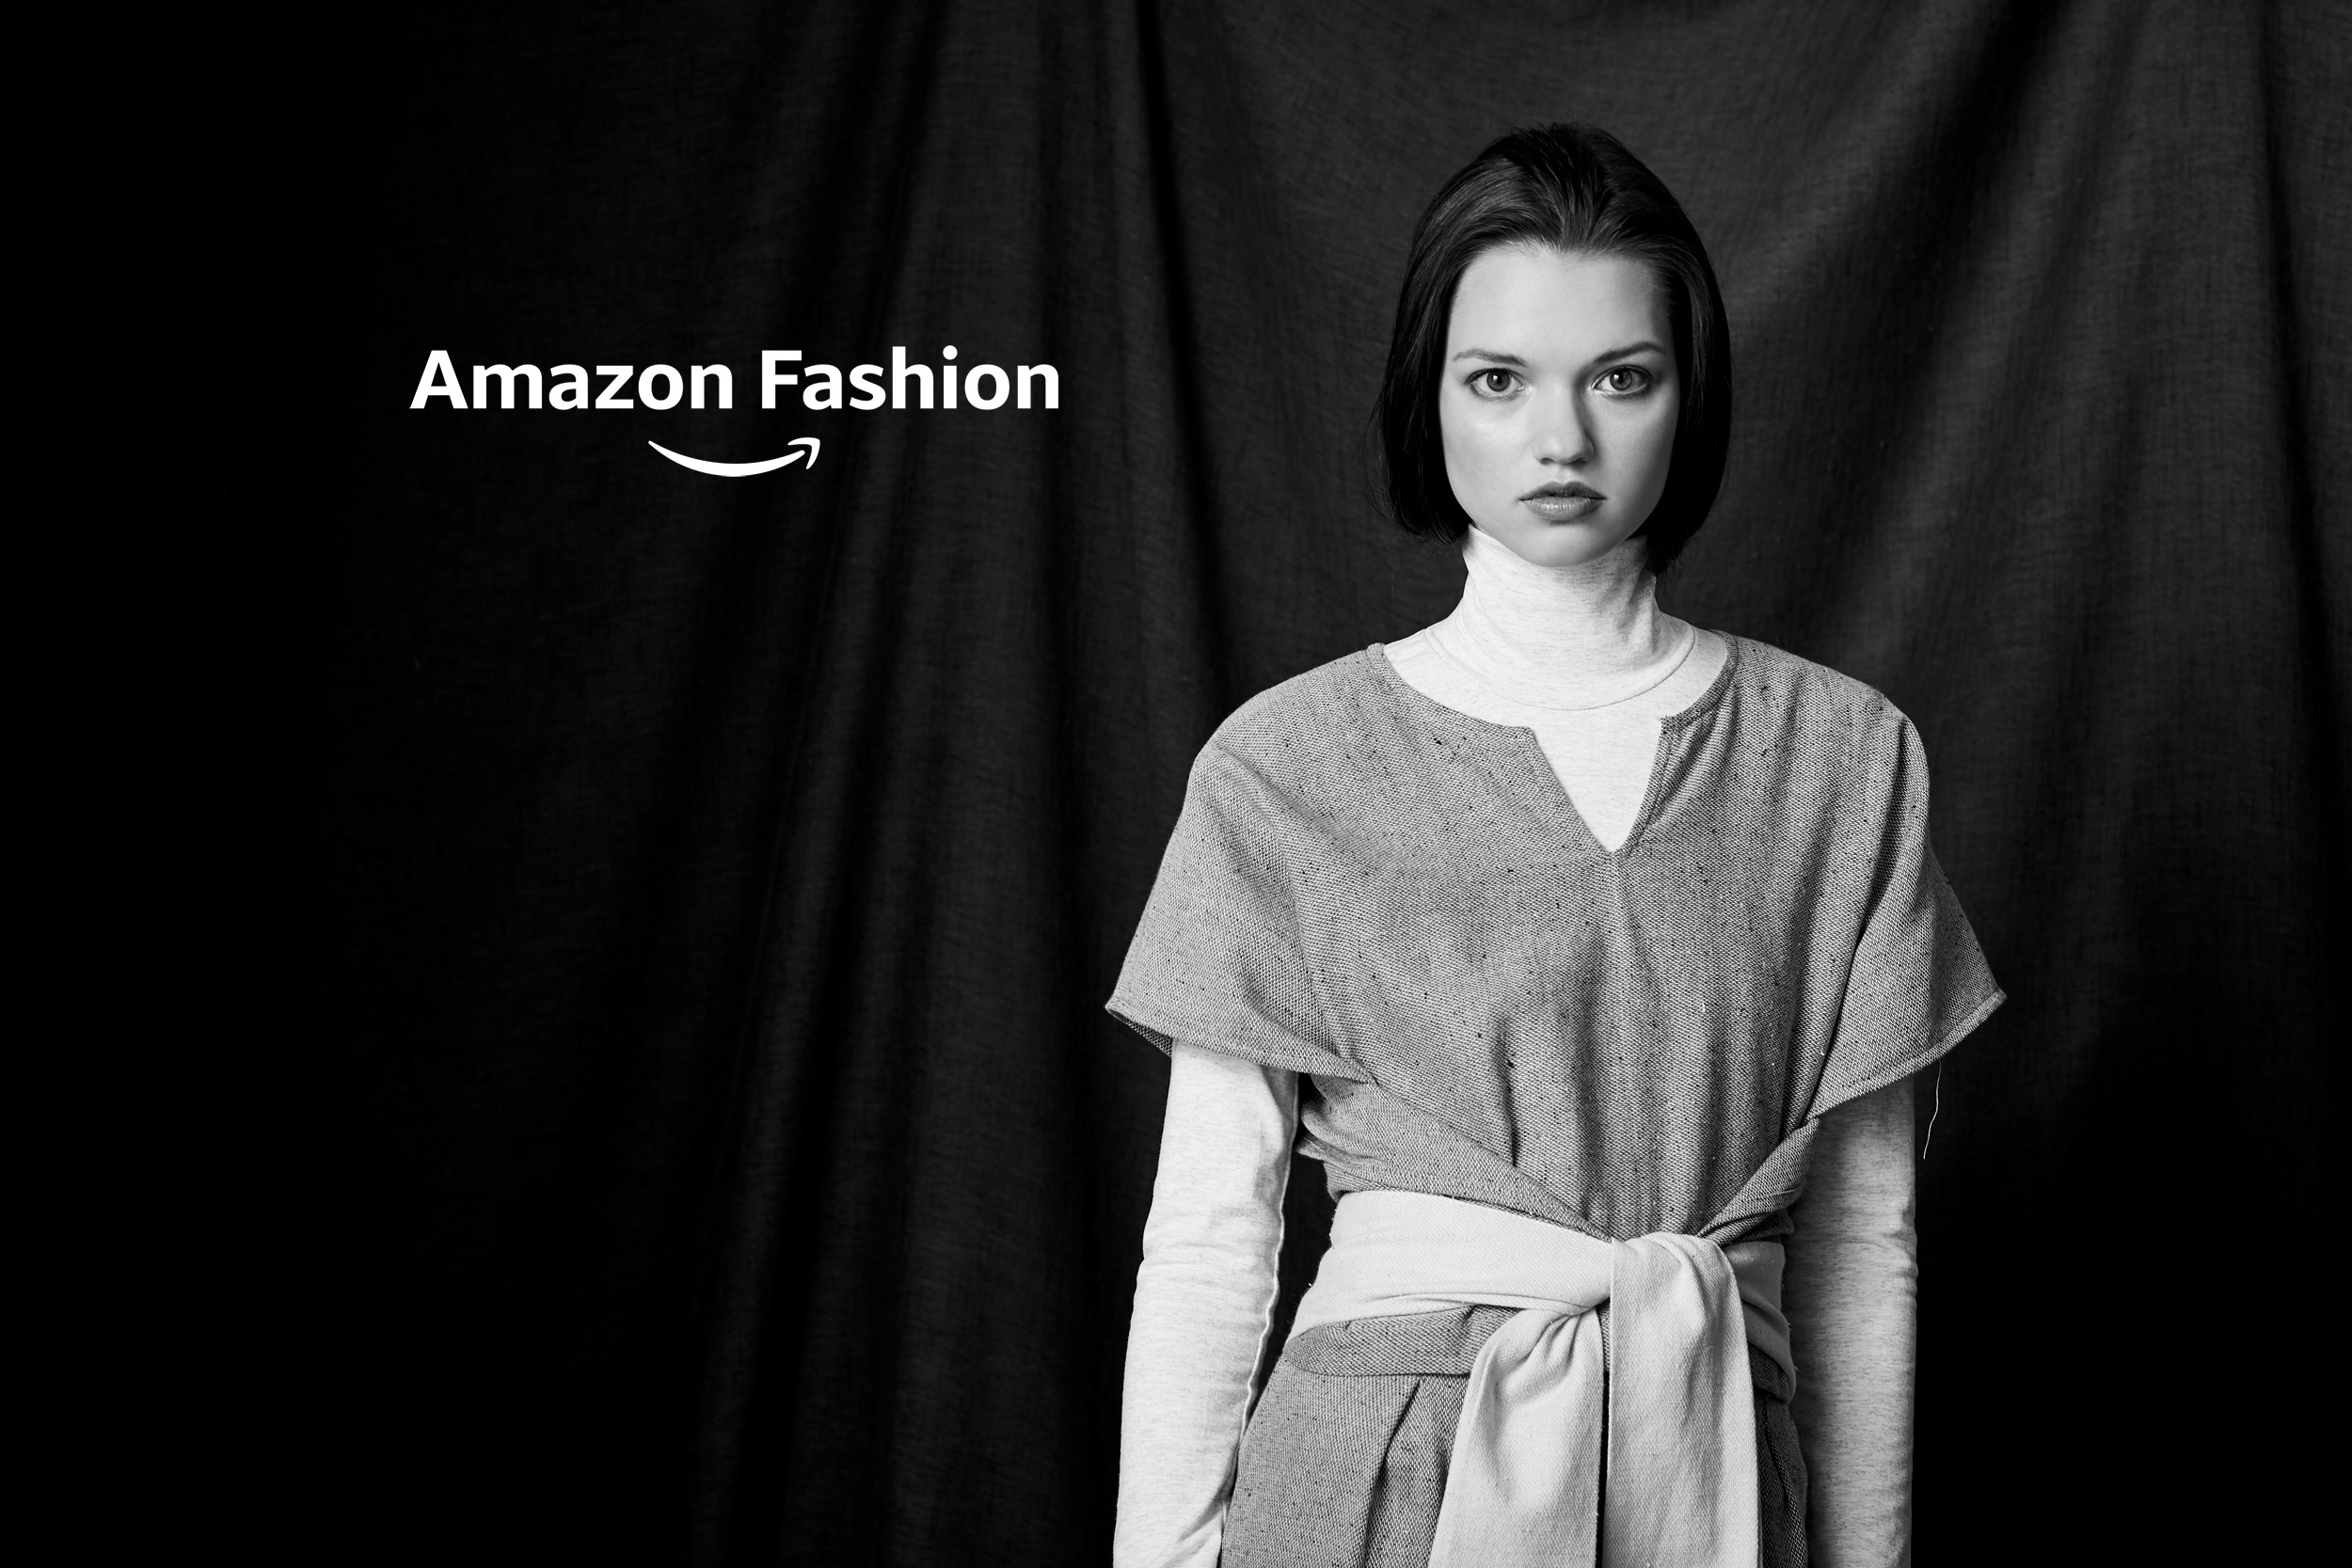 AmazonFashion20192595.EileanBrand